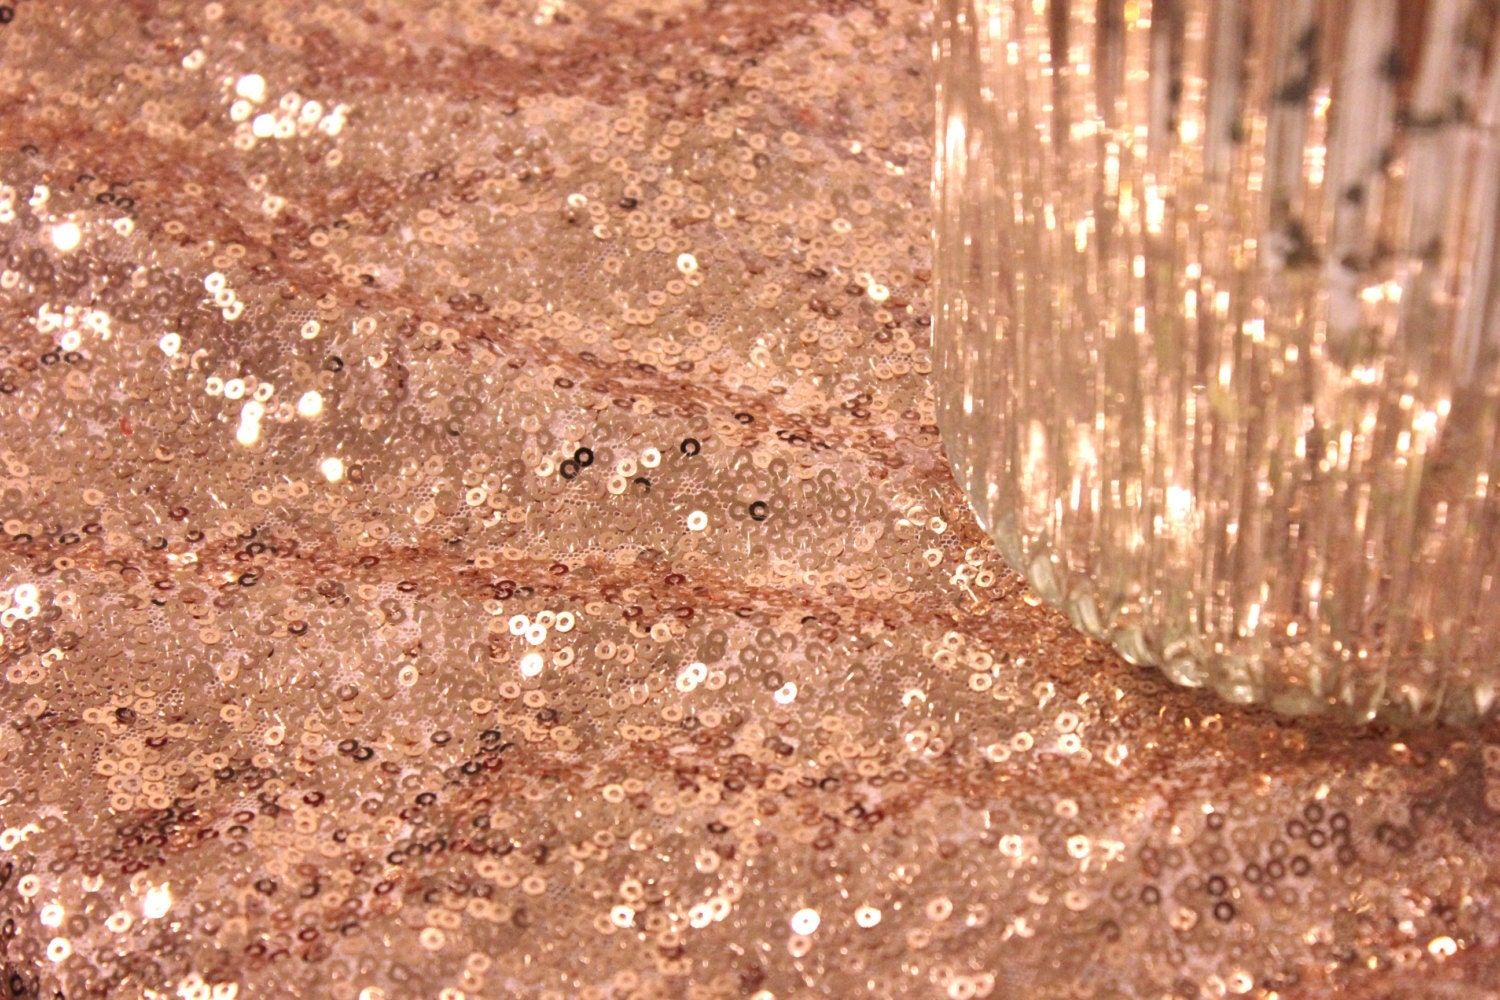 30 Ft. Fabric Bolt Rose Gold Blush Sequin Cloth by SparkleSoiree